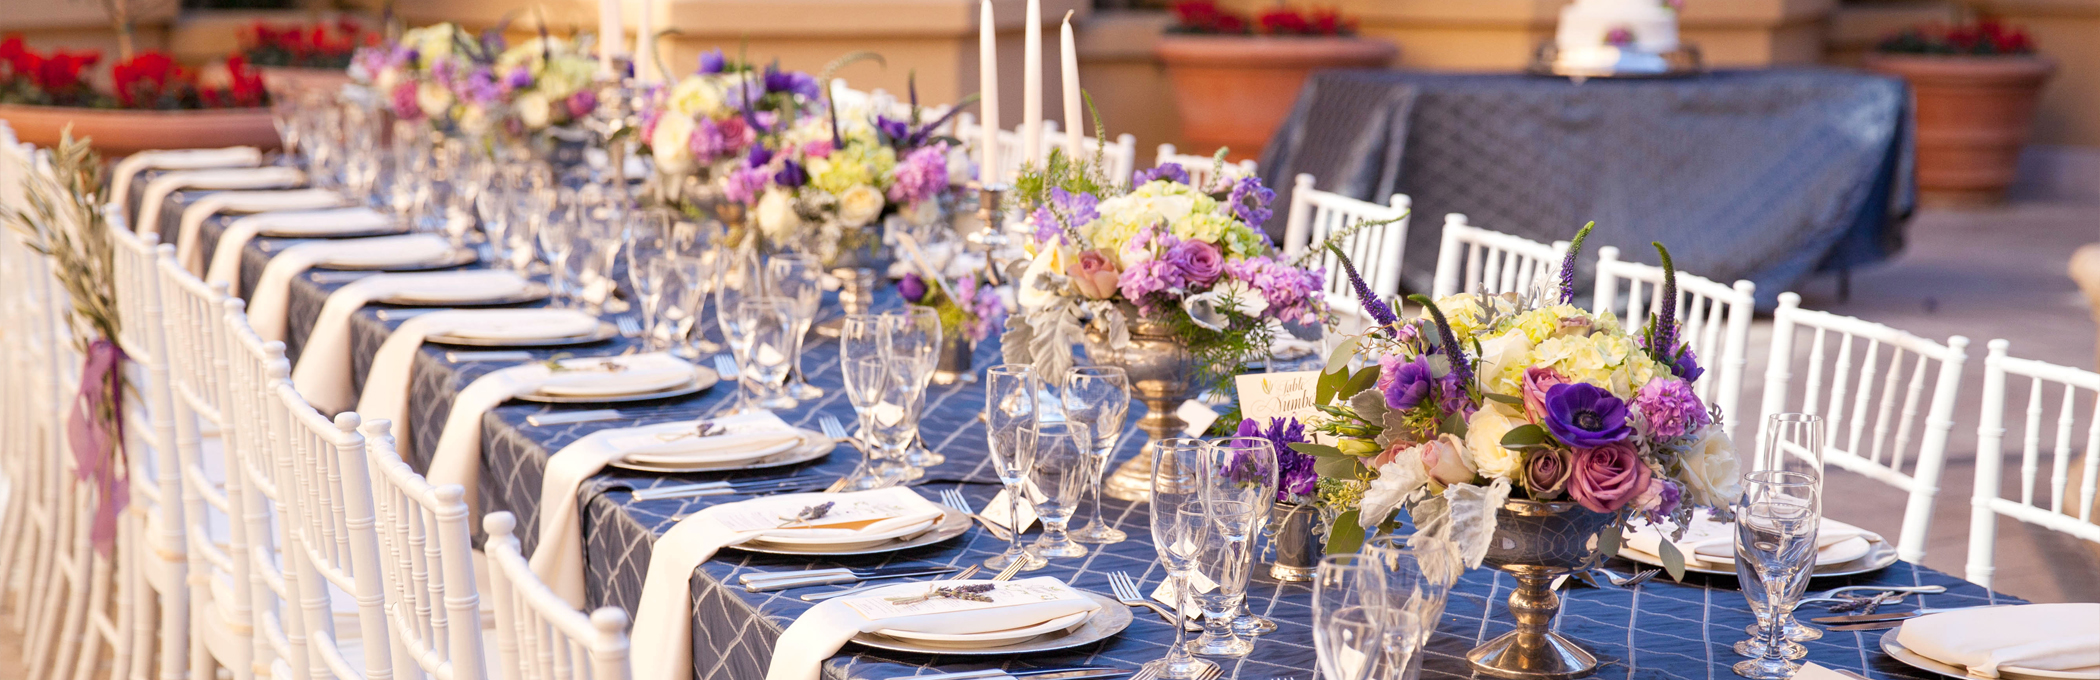 a long table with place settings and purple flower arrangements